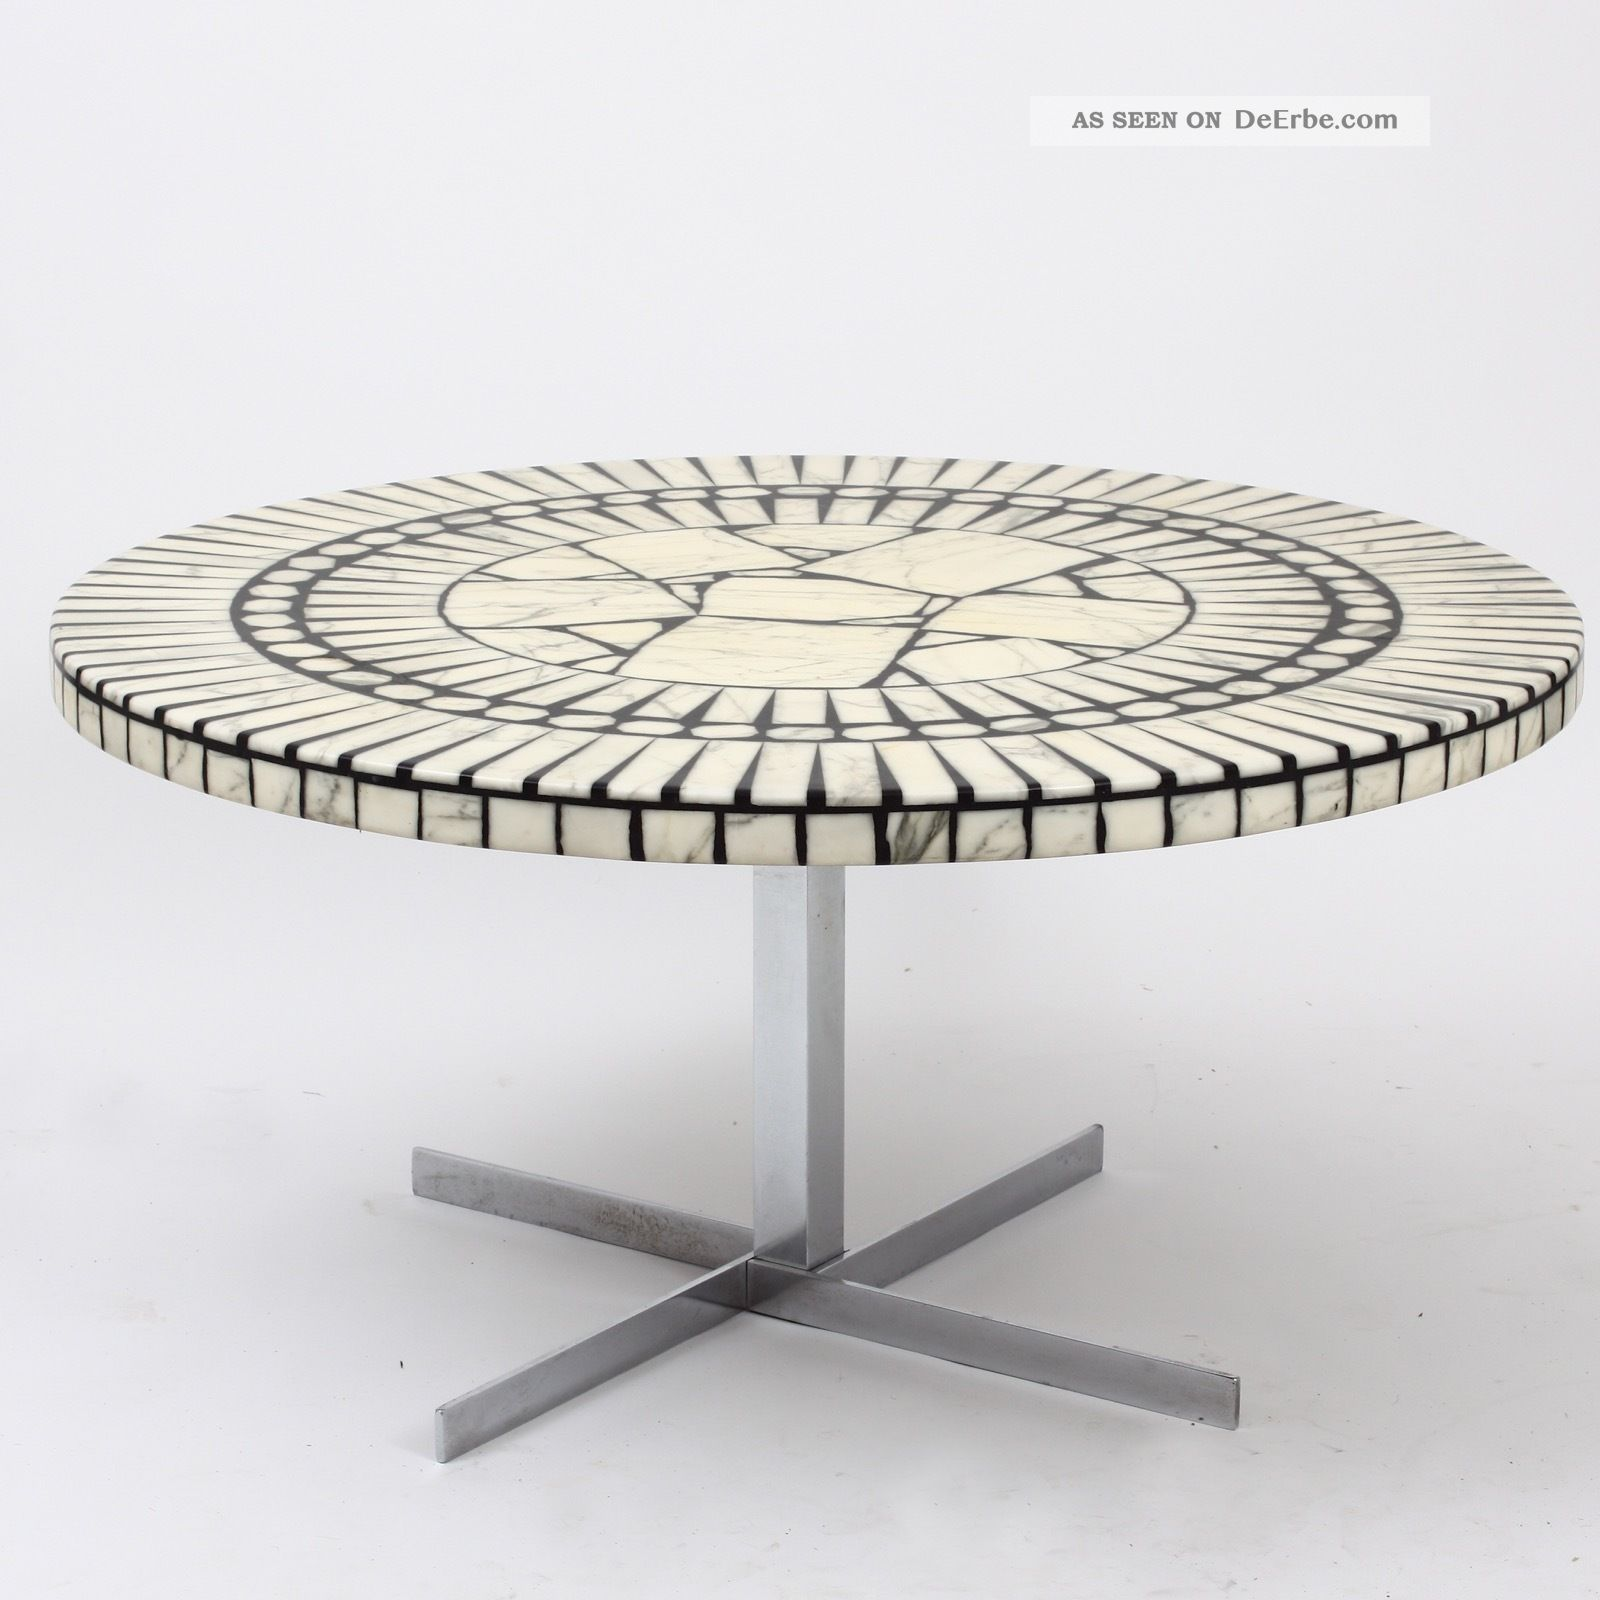 German Brutalism Coffee Table Heinz Lilienthal Knoll International Marmor Mosaik 1960-1969 Bild